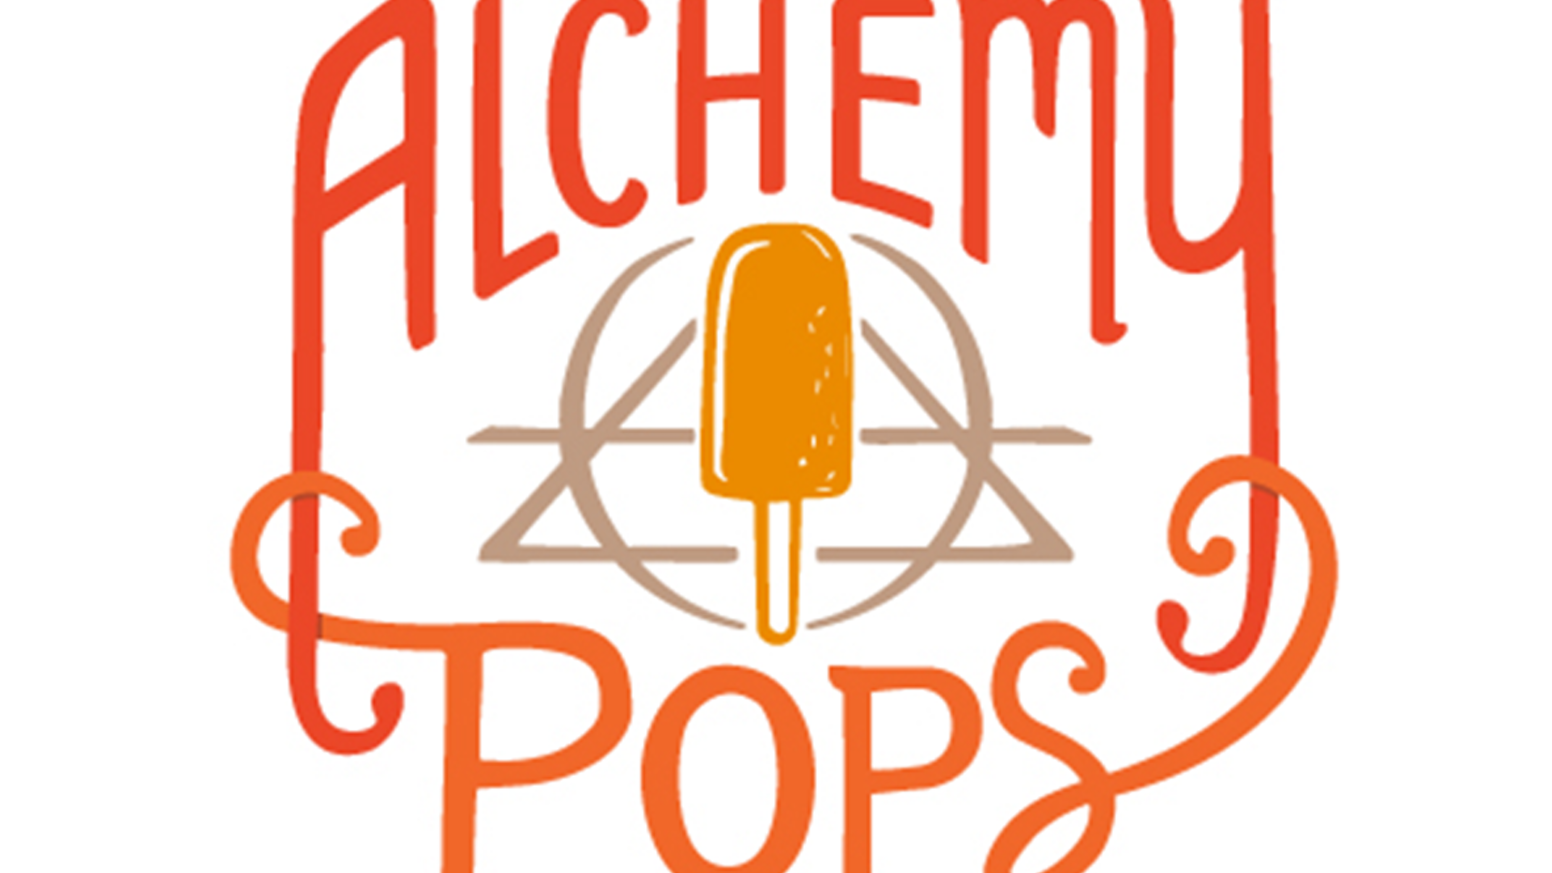 THANK YOU for helping Alchemy Pops POP up on a street near you!